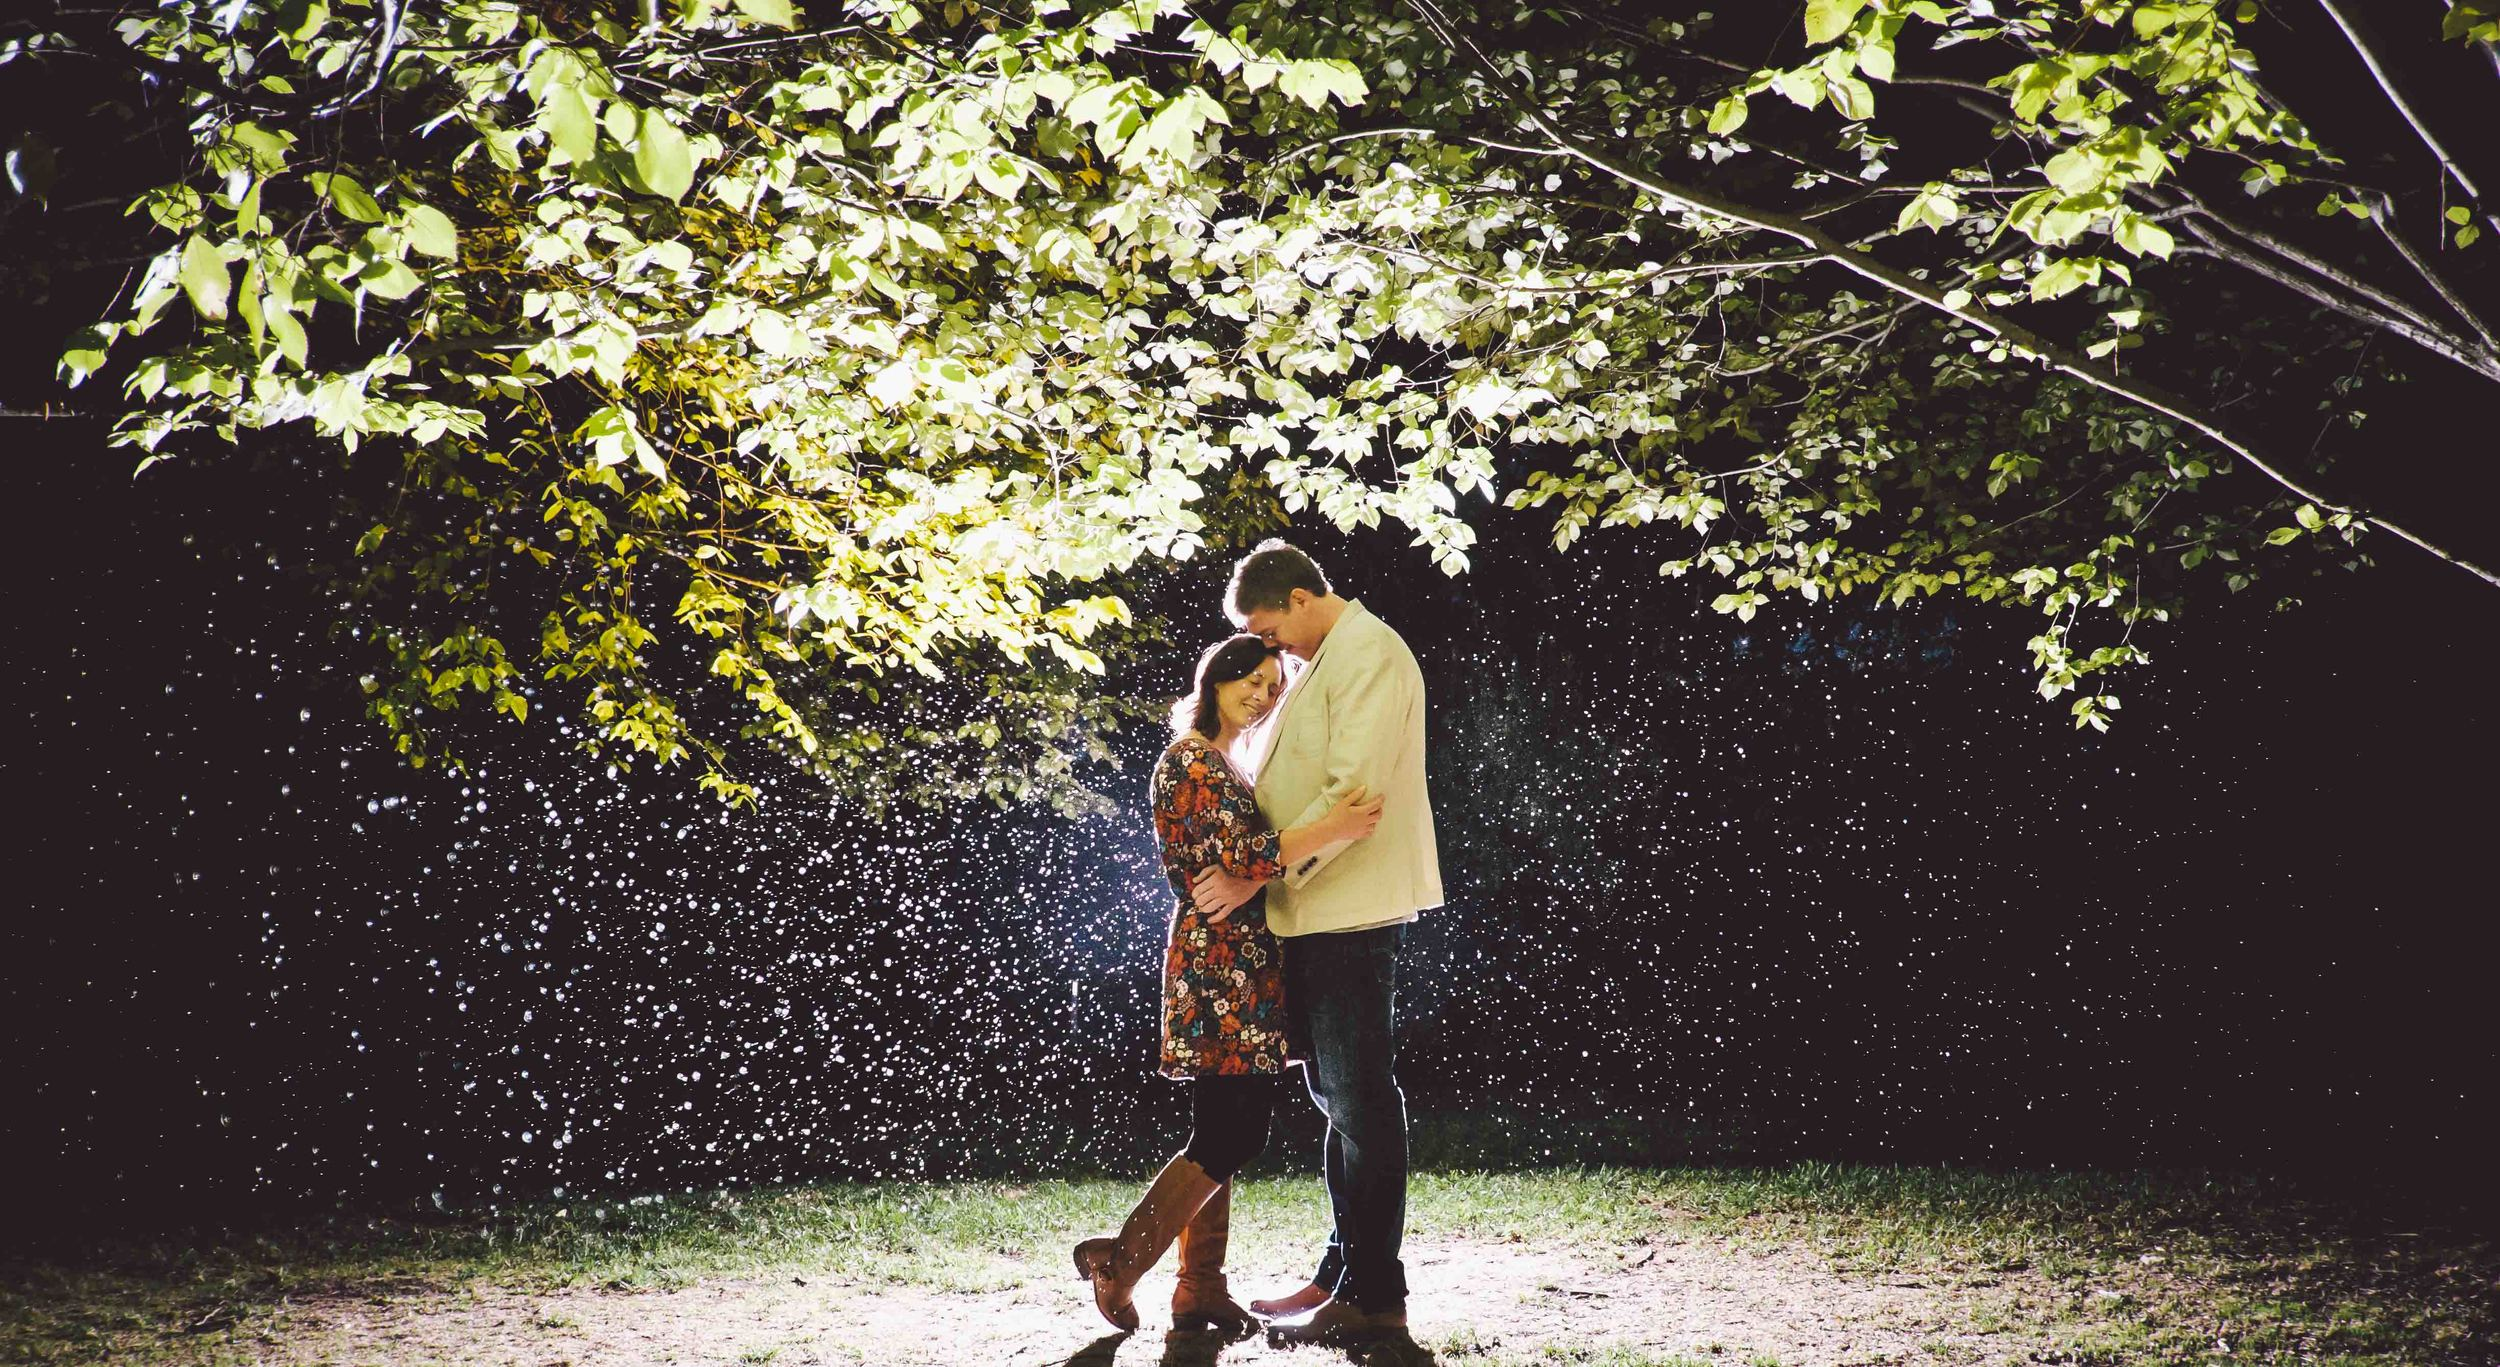 Engagement_Shoot_in_the_rain_under_a _tree_in_beautiful_light.